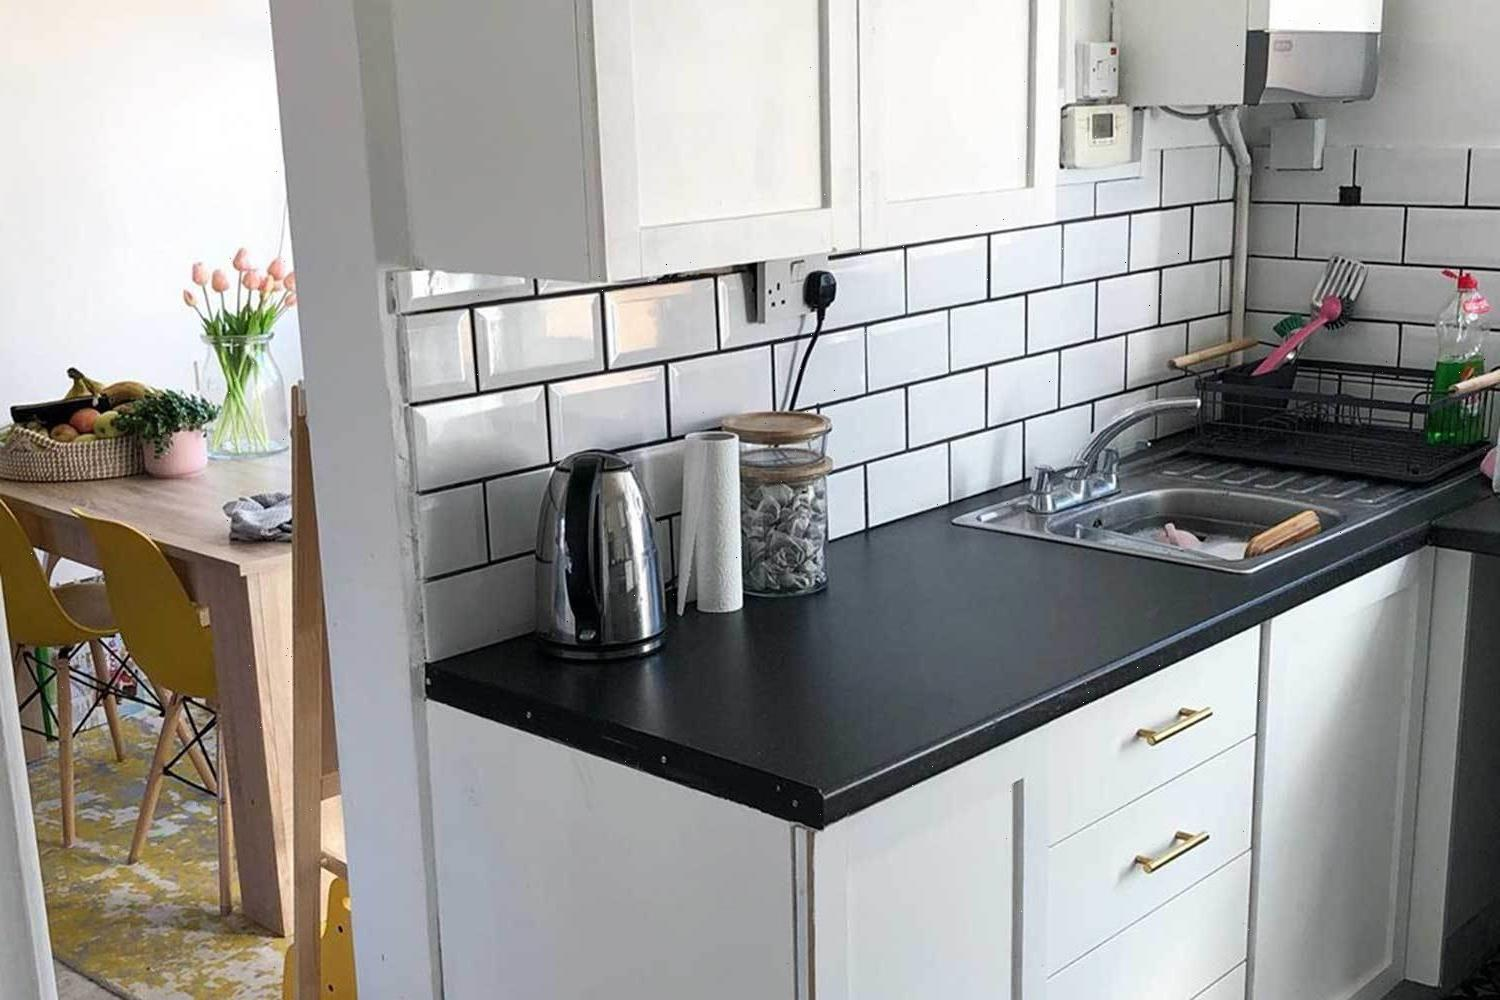 I was a single mum with no money to spend on my home – now I've transformed it with Marketplace & Ikea bargains